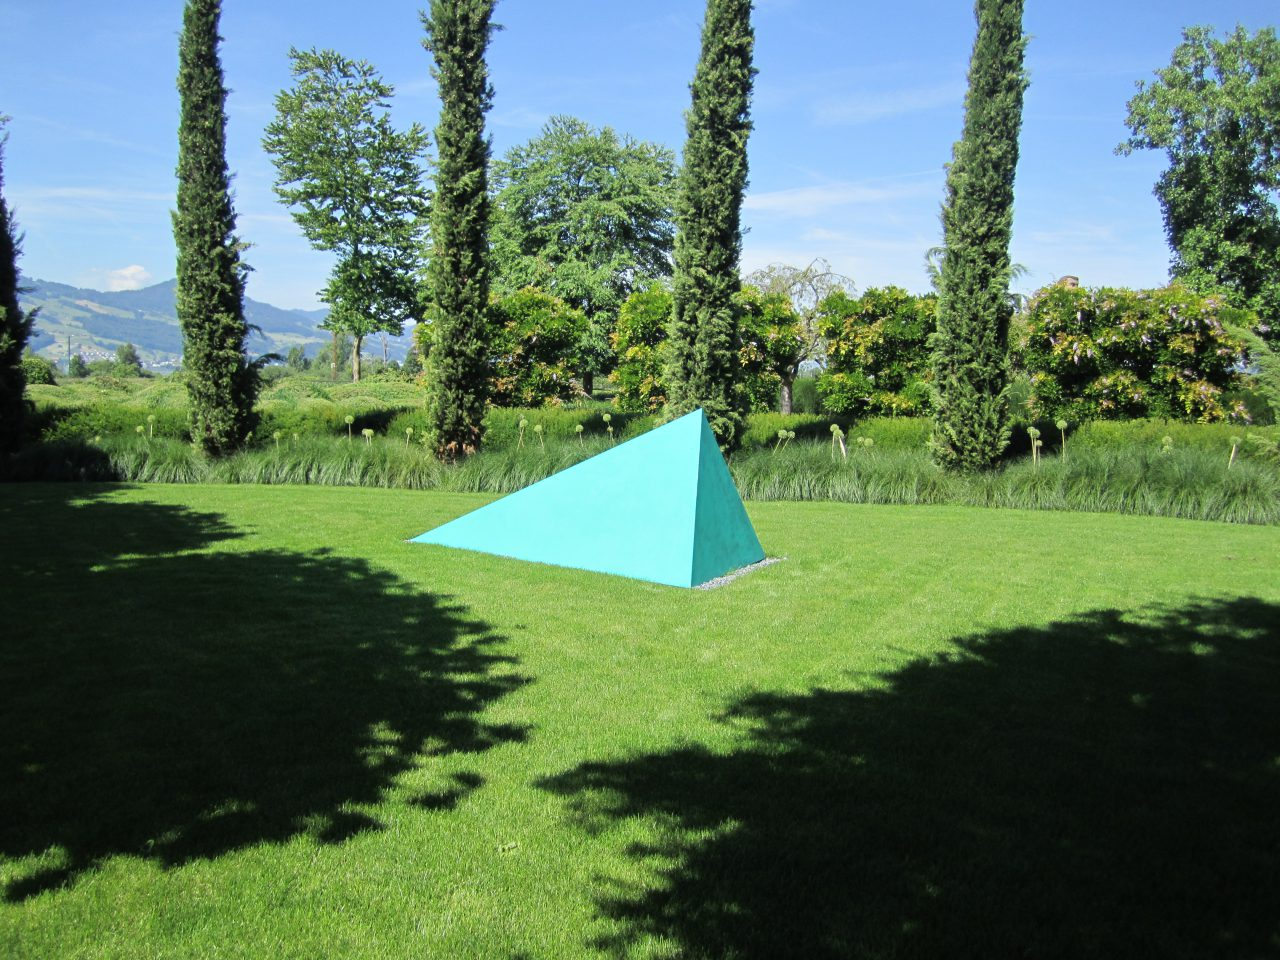 Comment vivre ensemble | 2015 | coated aluminium, spruce 120 x 310 x 140 cm exhibition views, Enea Tree Museum, Rapperwil–Jona, Switzerland